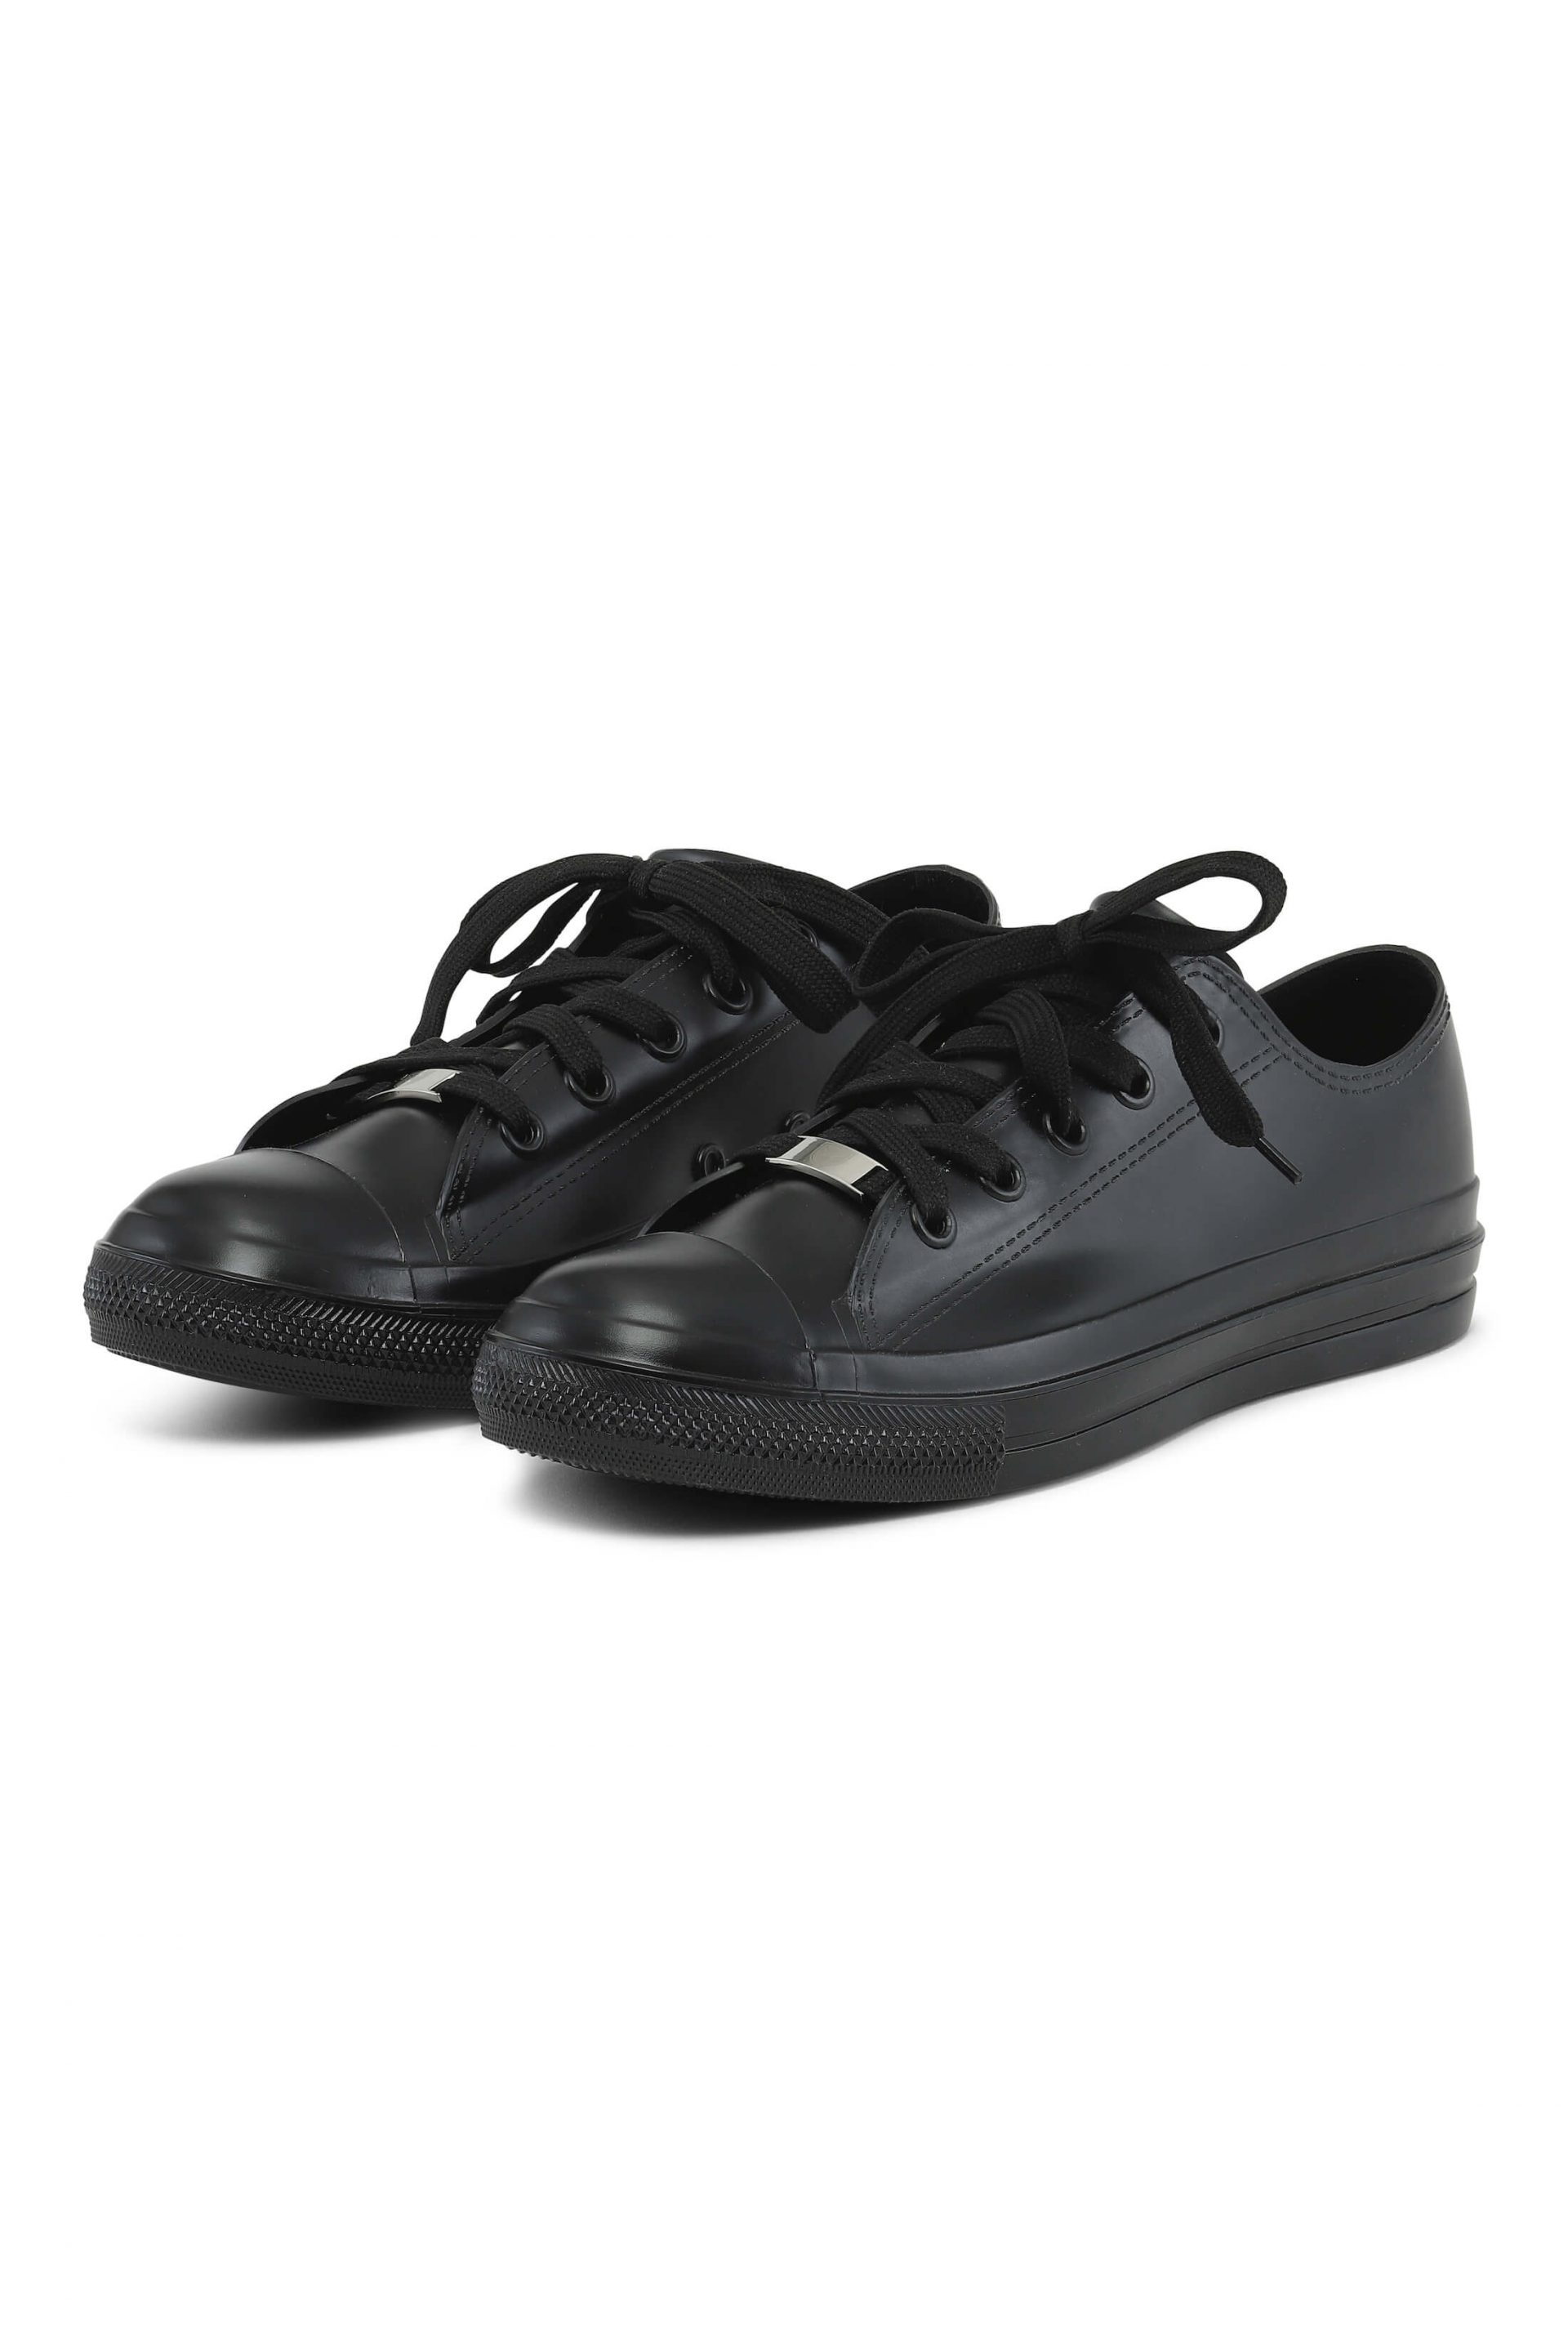 Black water-resistant sneakers